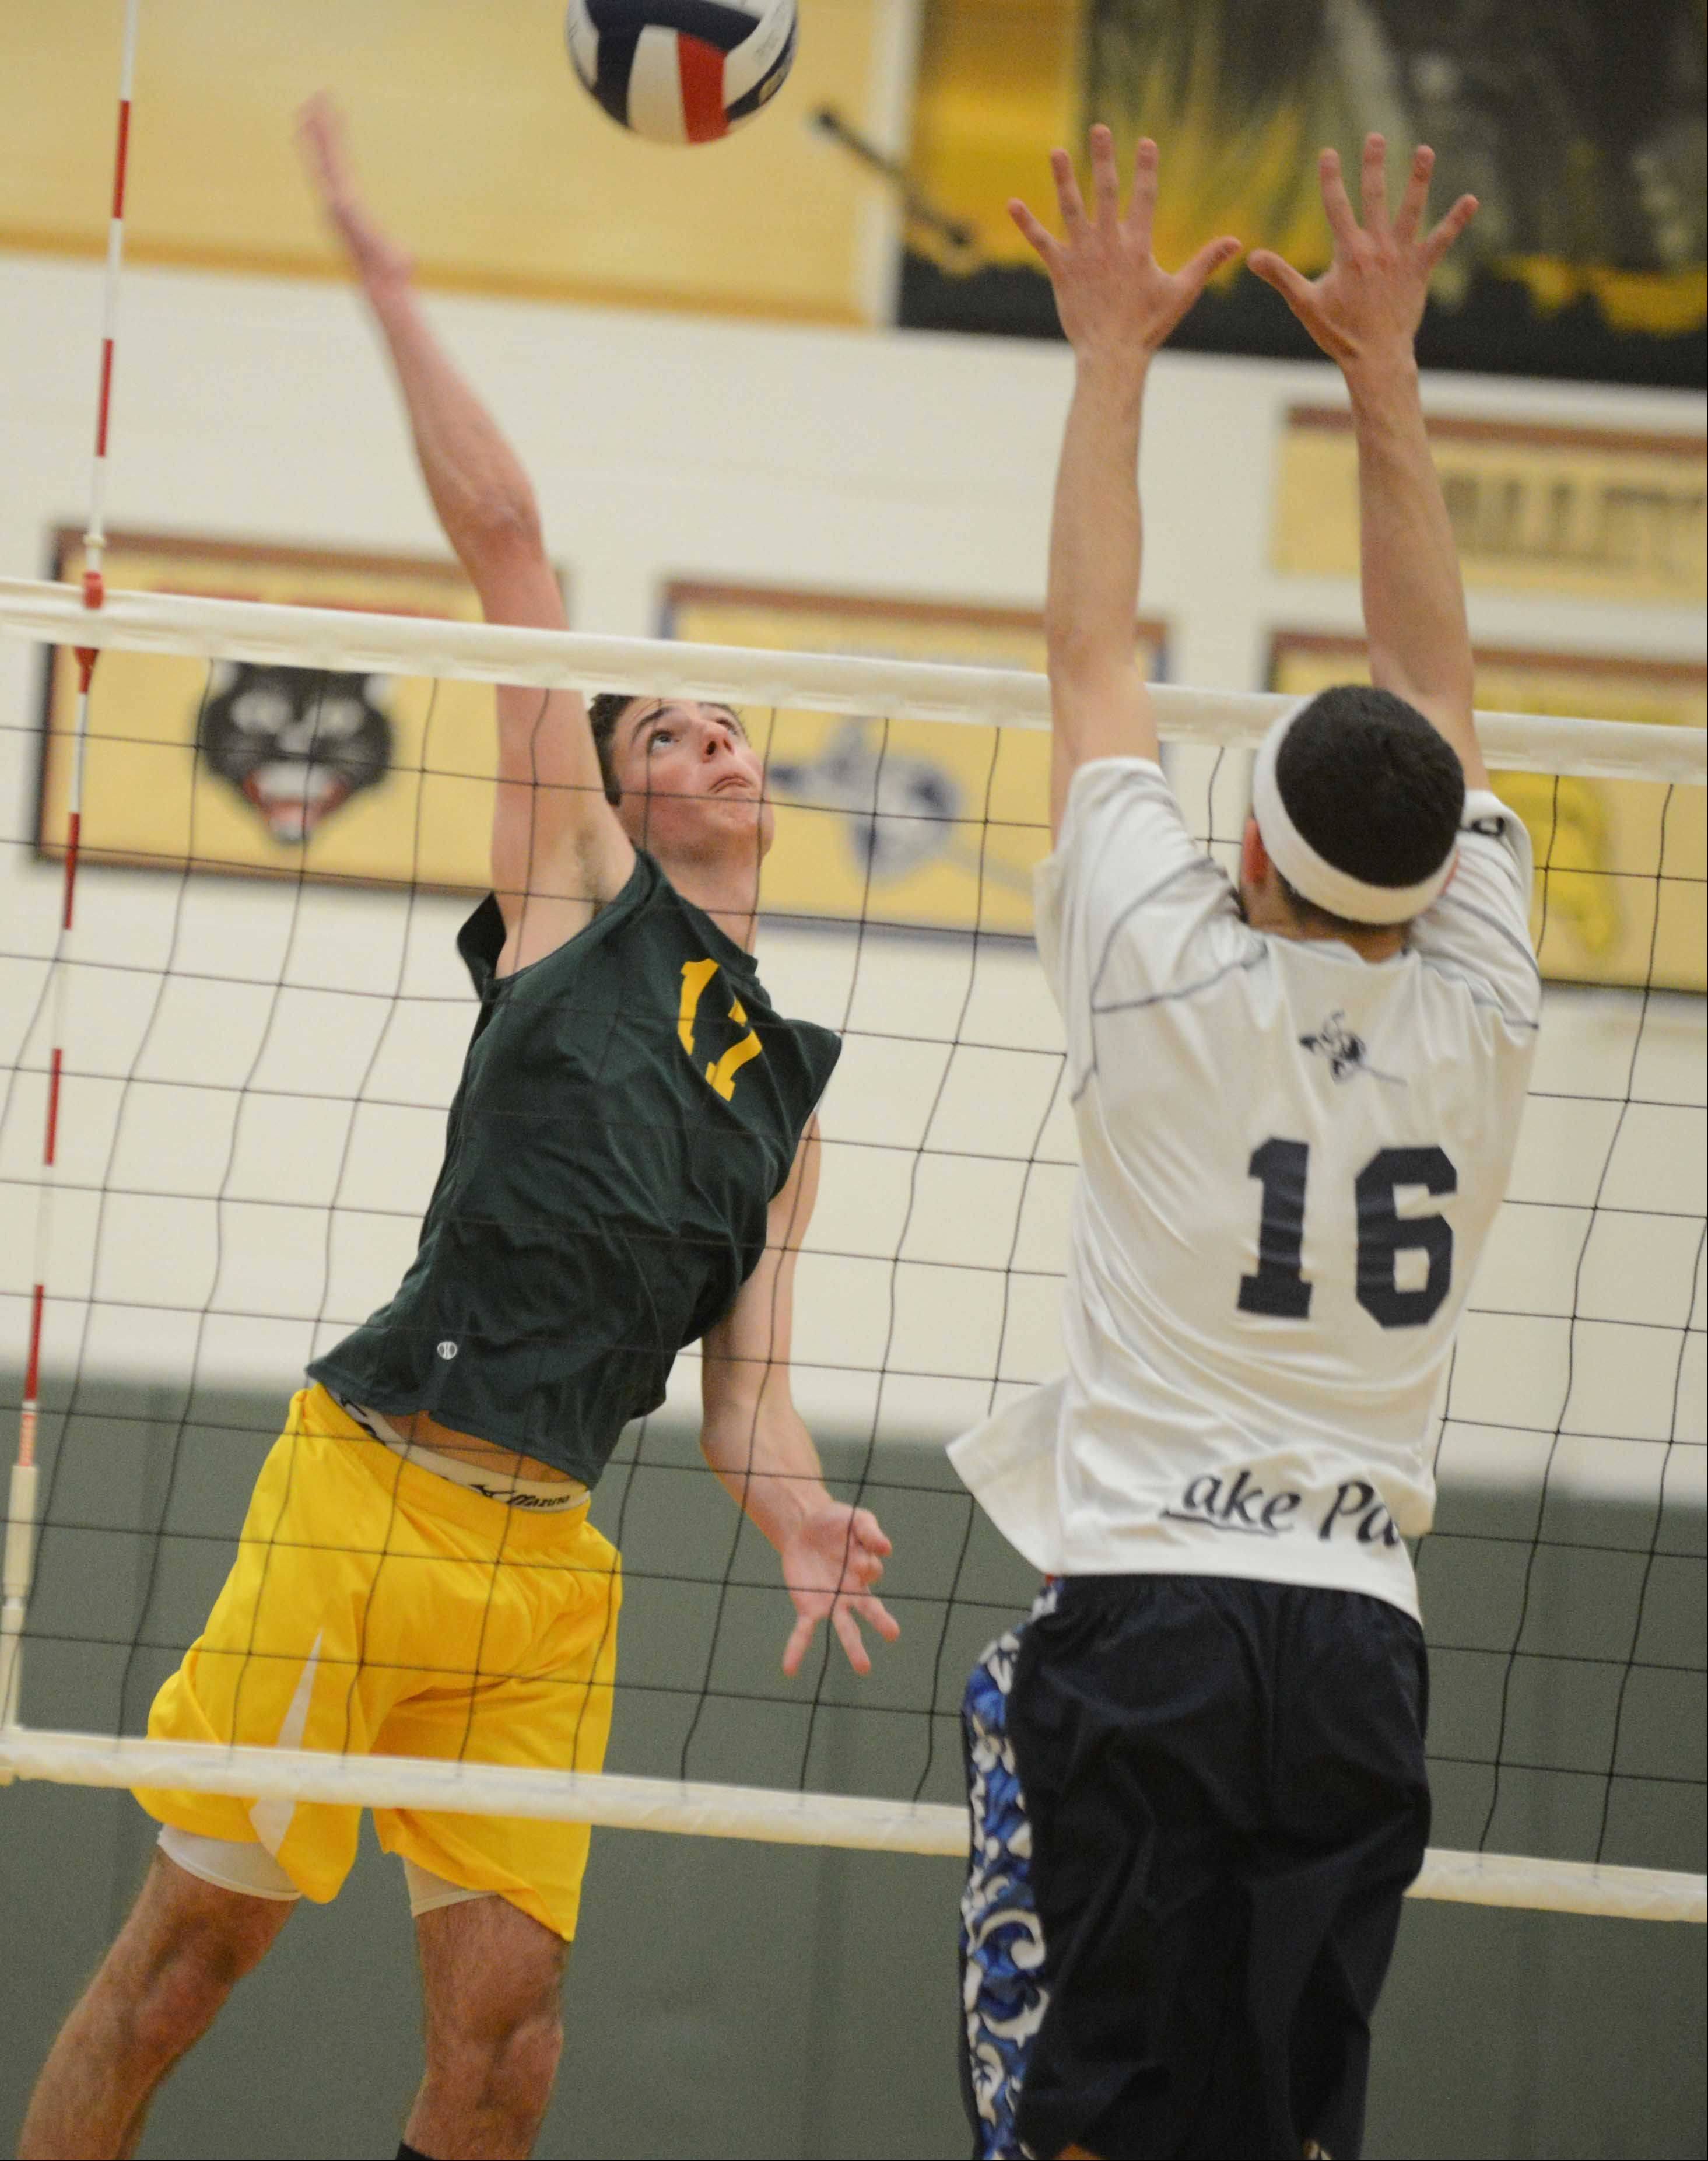 Michael Simmons of Waubonsie Valley hits one at Terry Dominick of Lake Park during the Lake Park at Waubonsie Valley boys volleyball game Tuesday.